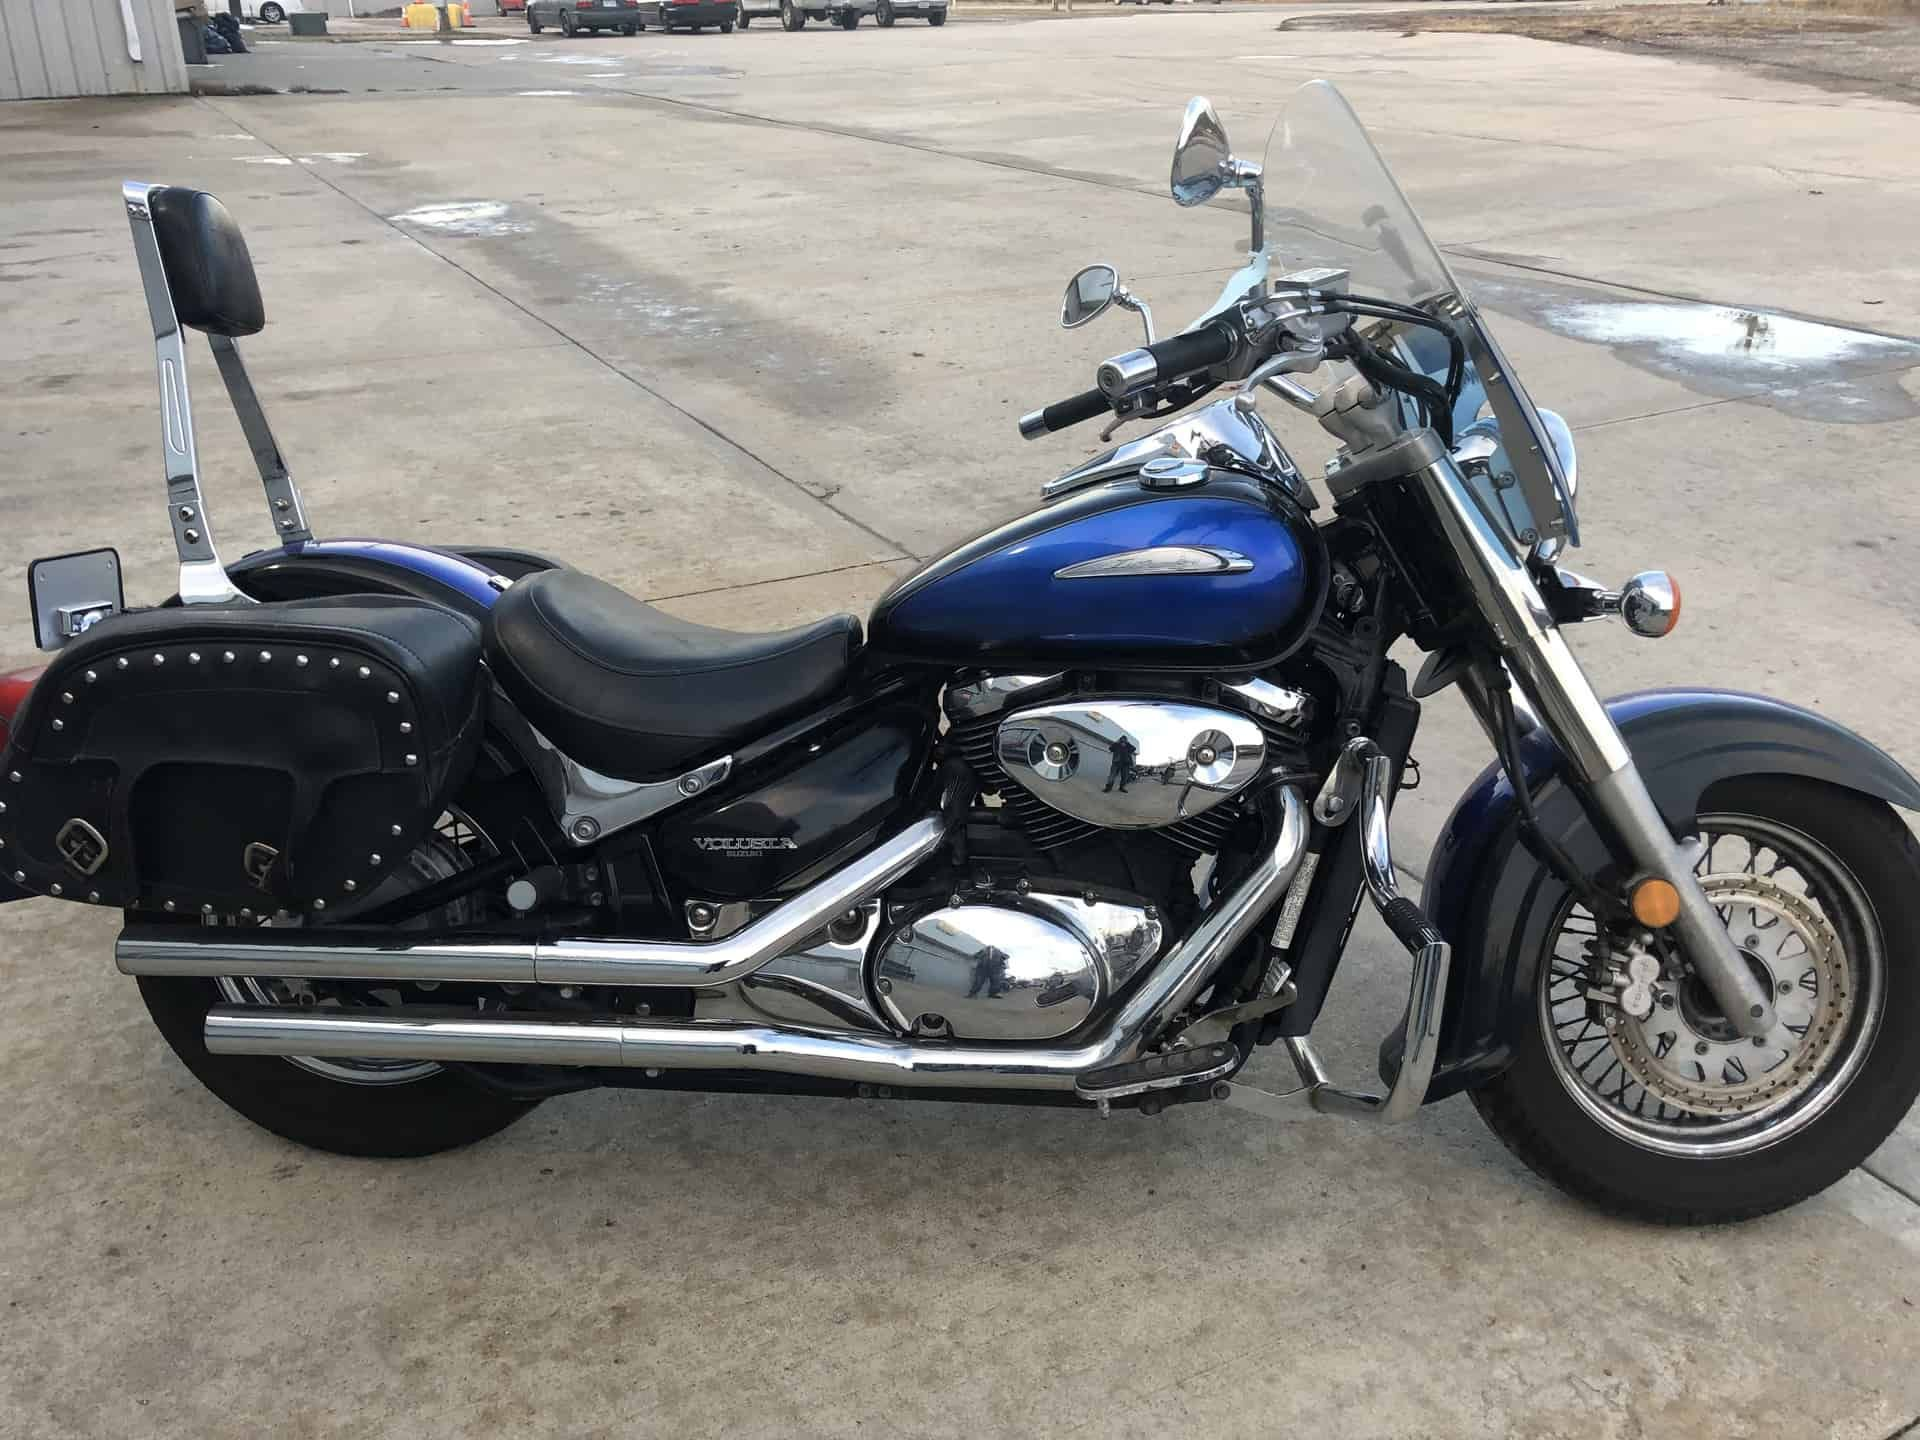 Suzuki Intruder Volusia, 2002 Suzuki Intruder Volusia for sale $1,000, Knobtown Cycle, Knobtown Cycle